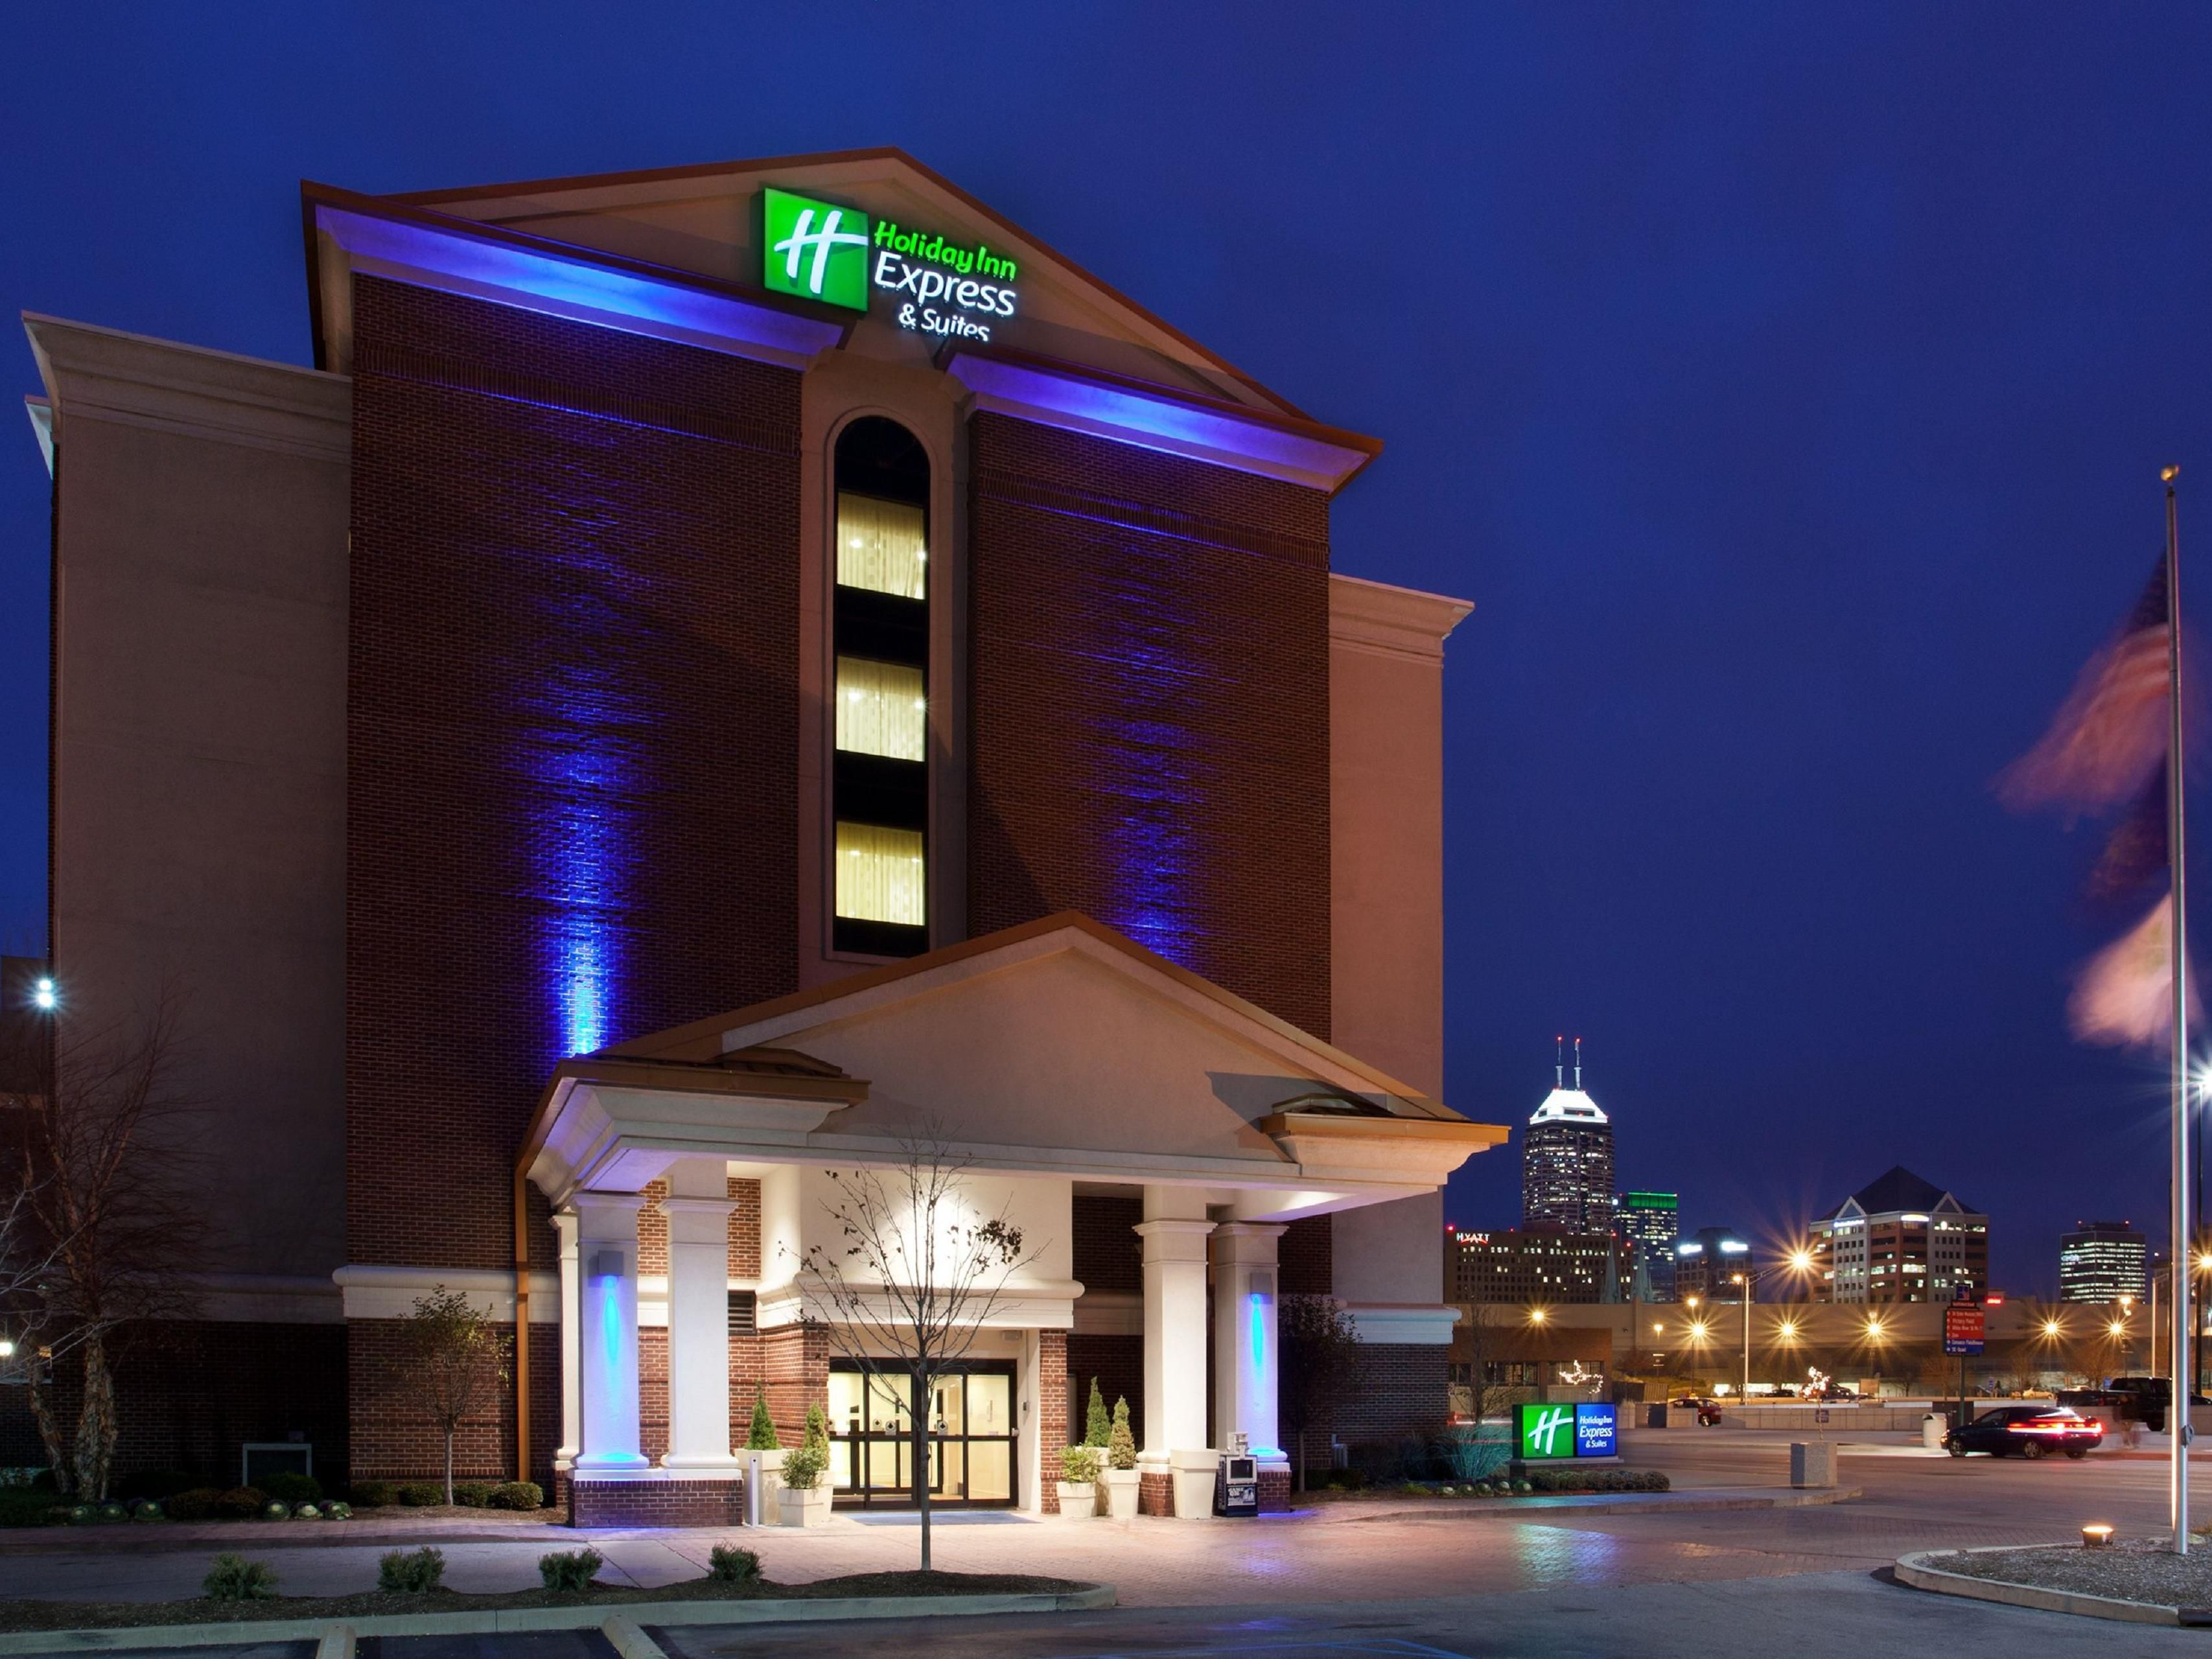 Holiday Inn Express Suites Indianapolis Dtn Conv Ctr Area Hotel By Ihg